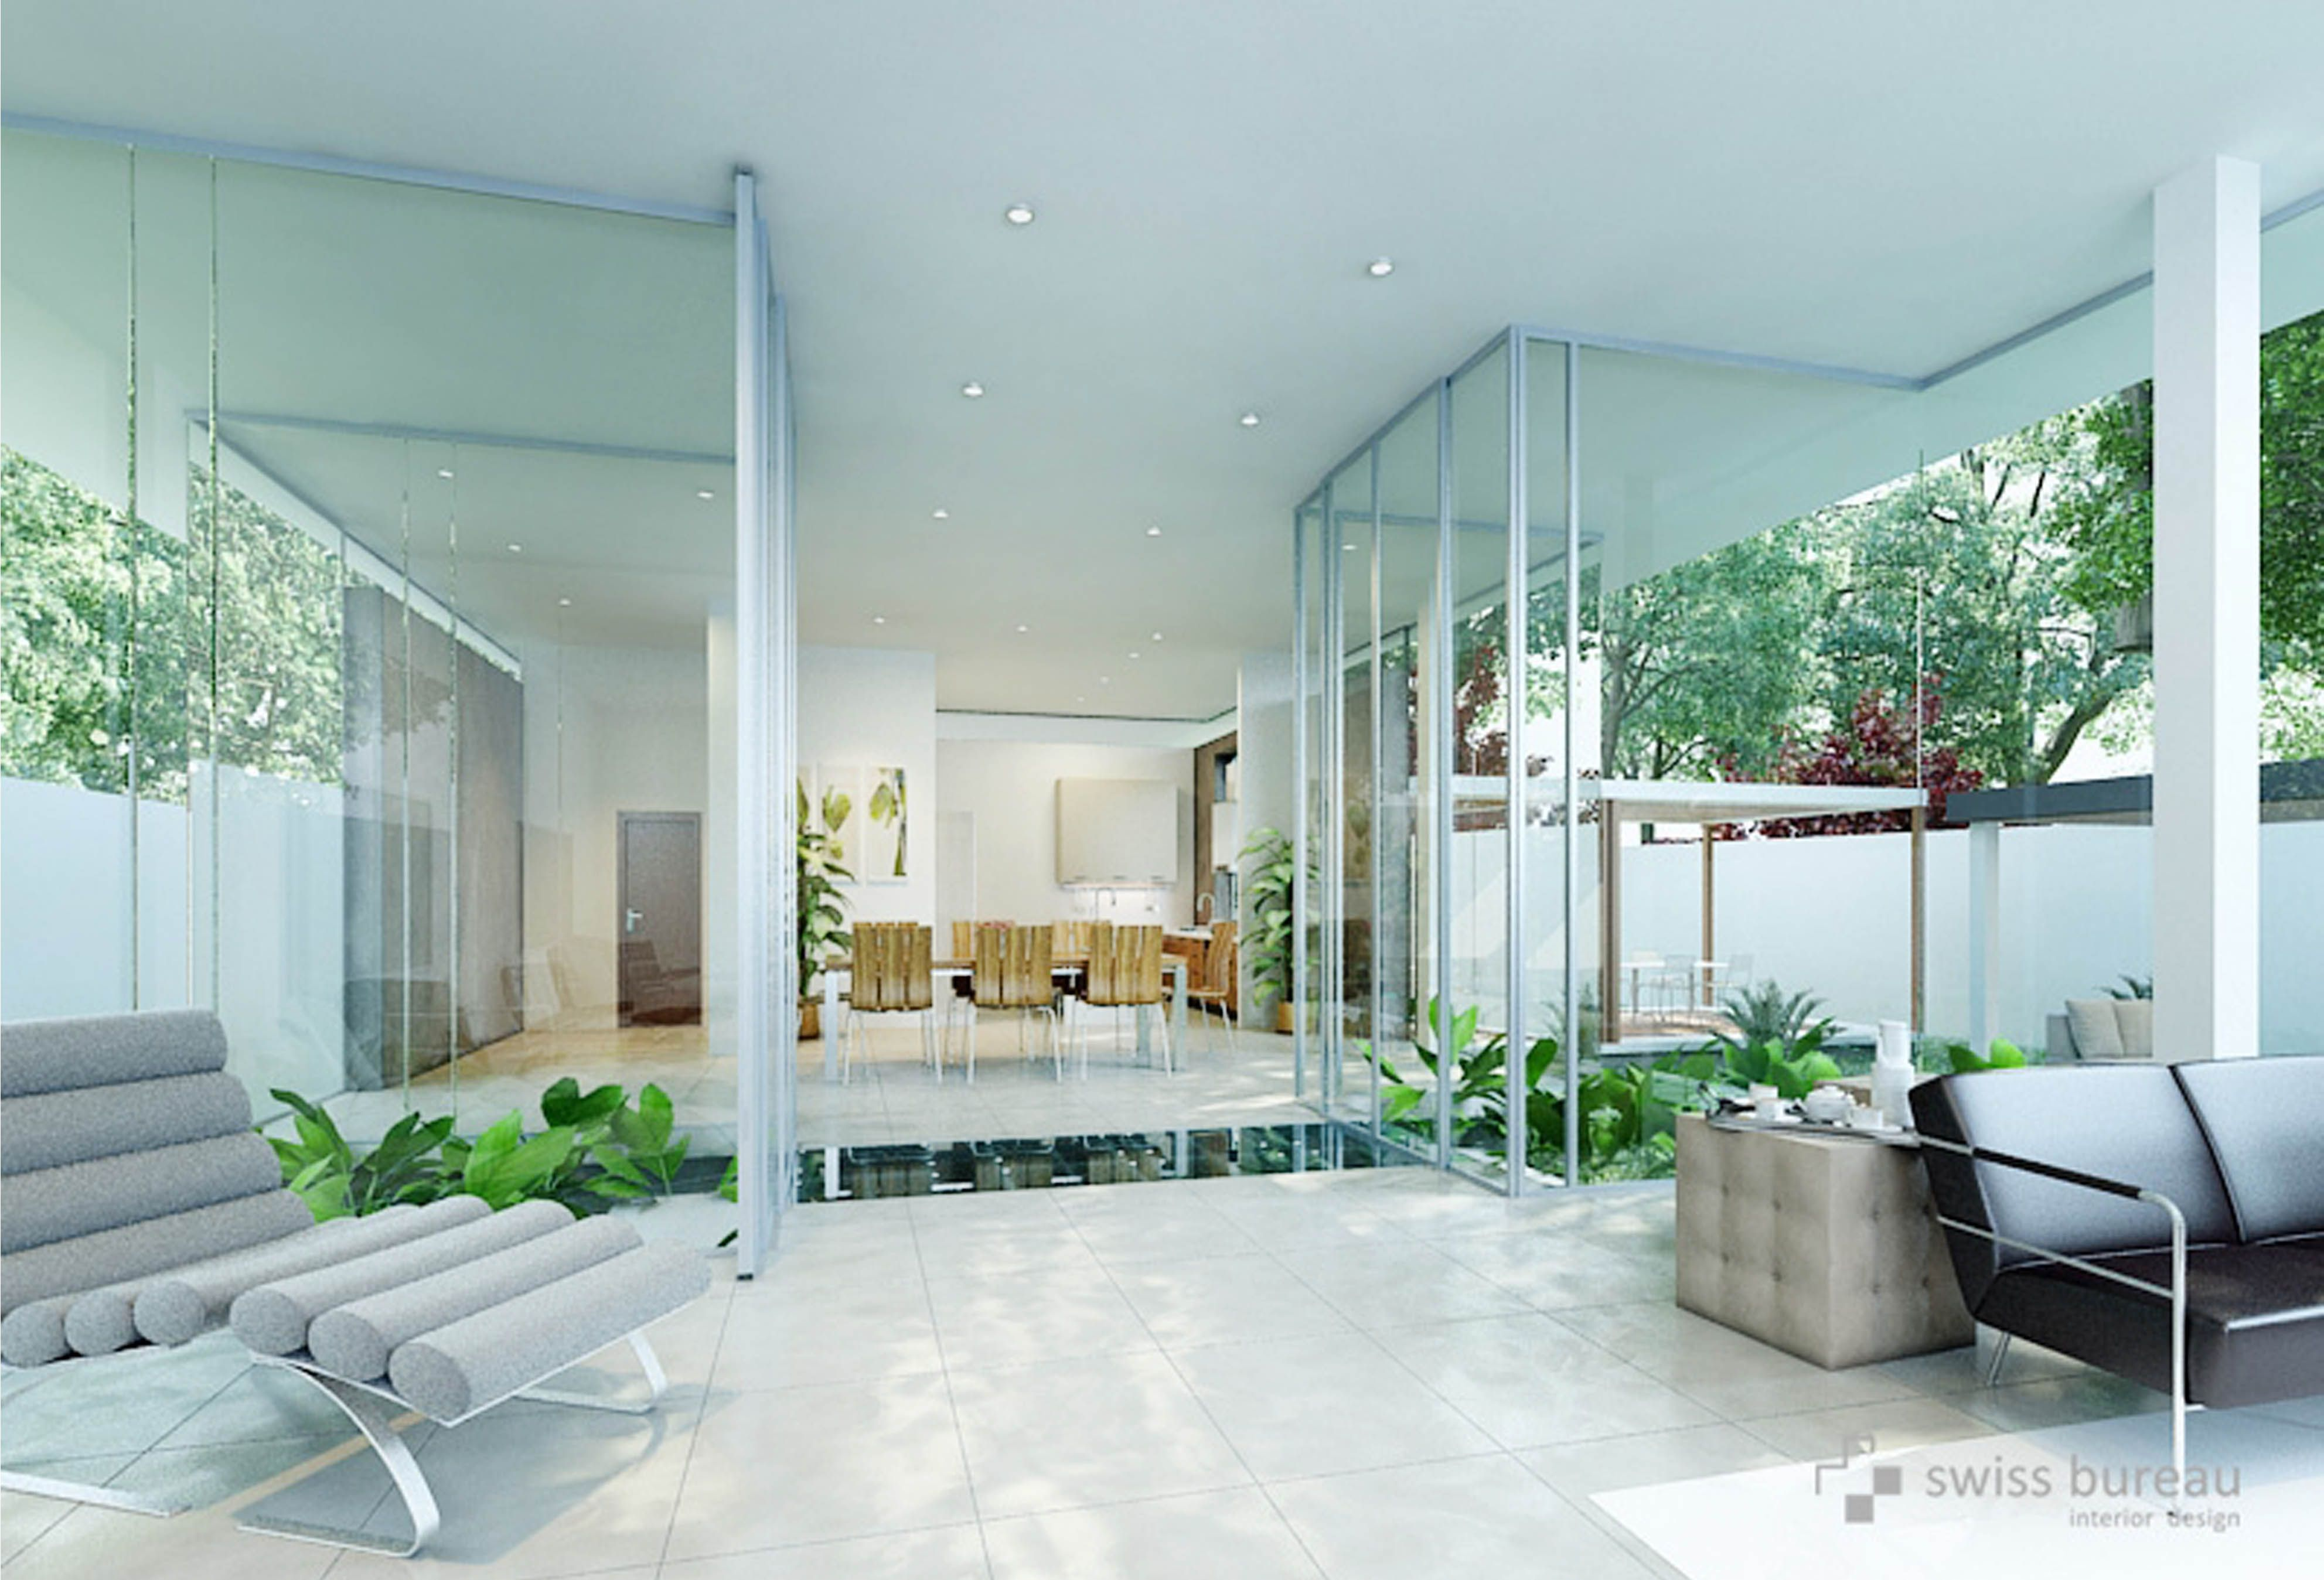 Modern villa interior designed by swiss bureau interior for Best modern villa designs